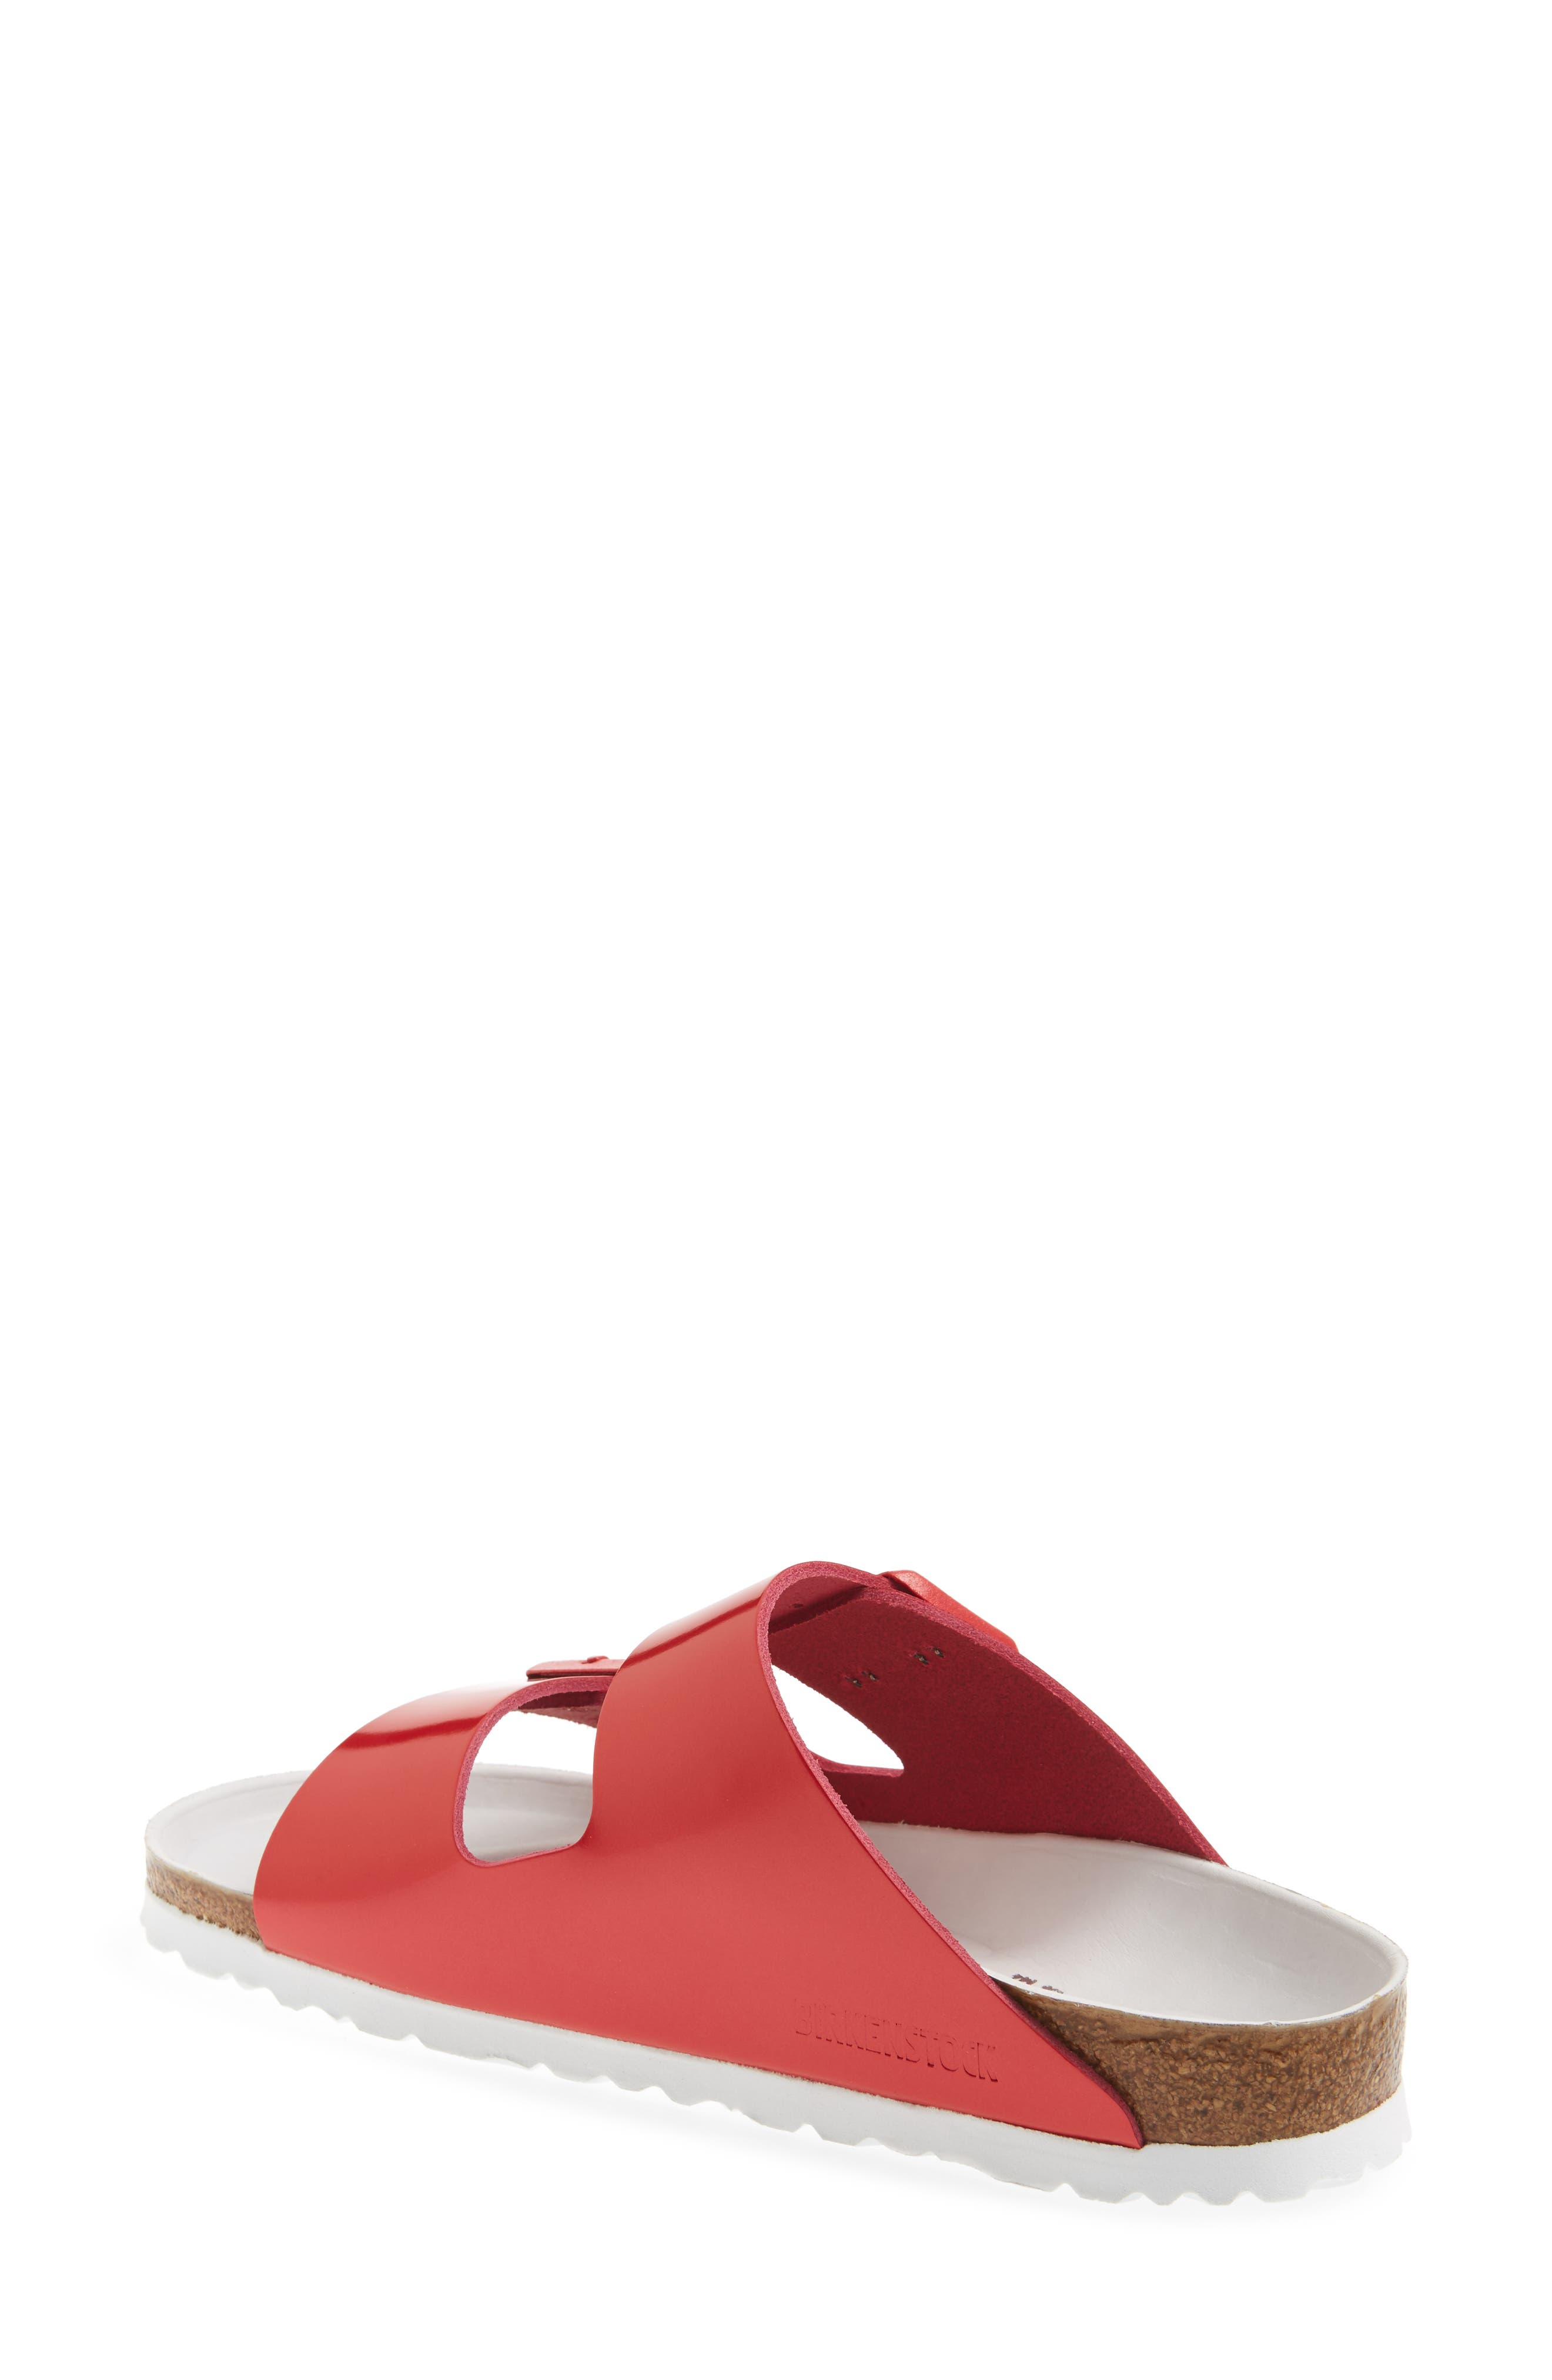 Arizona Hex Limited Edition - Shock Drop Slide Sandal,                             Alternate thumbnail 2, color,                             Red Spectacular Leather